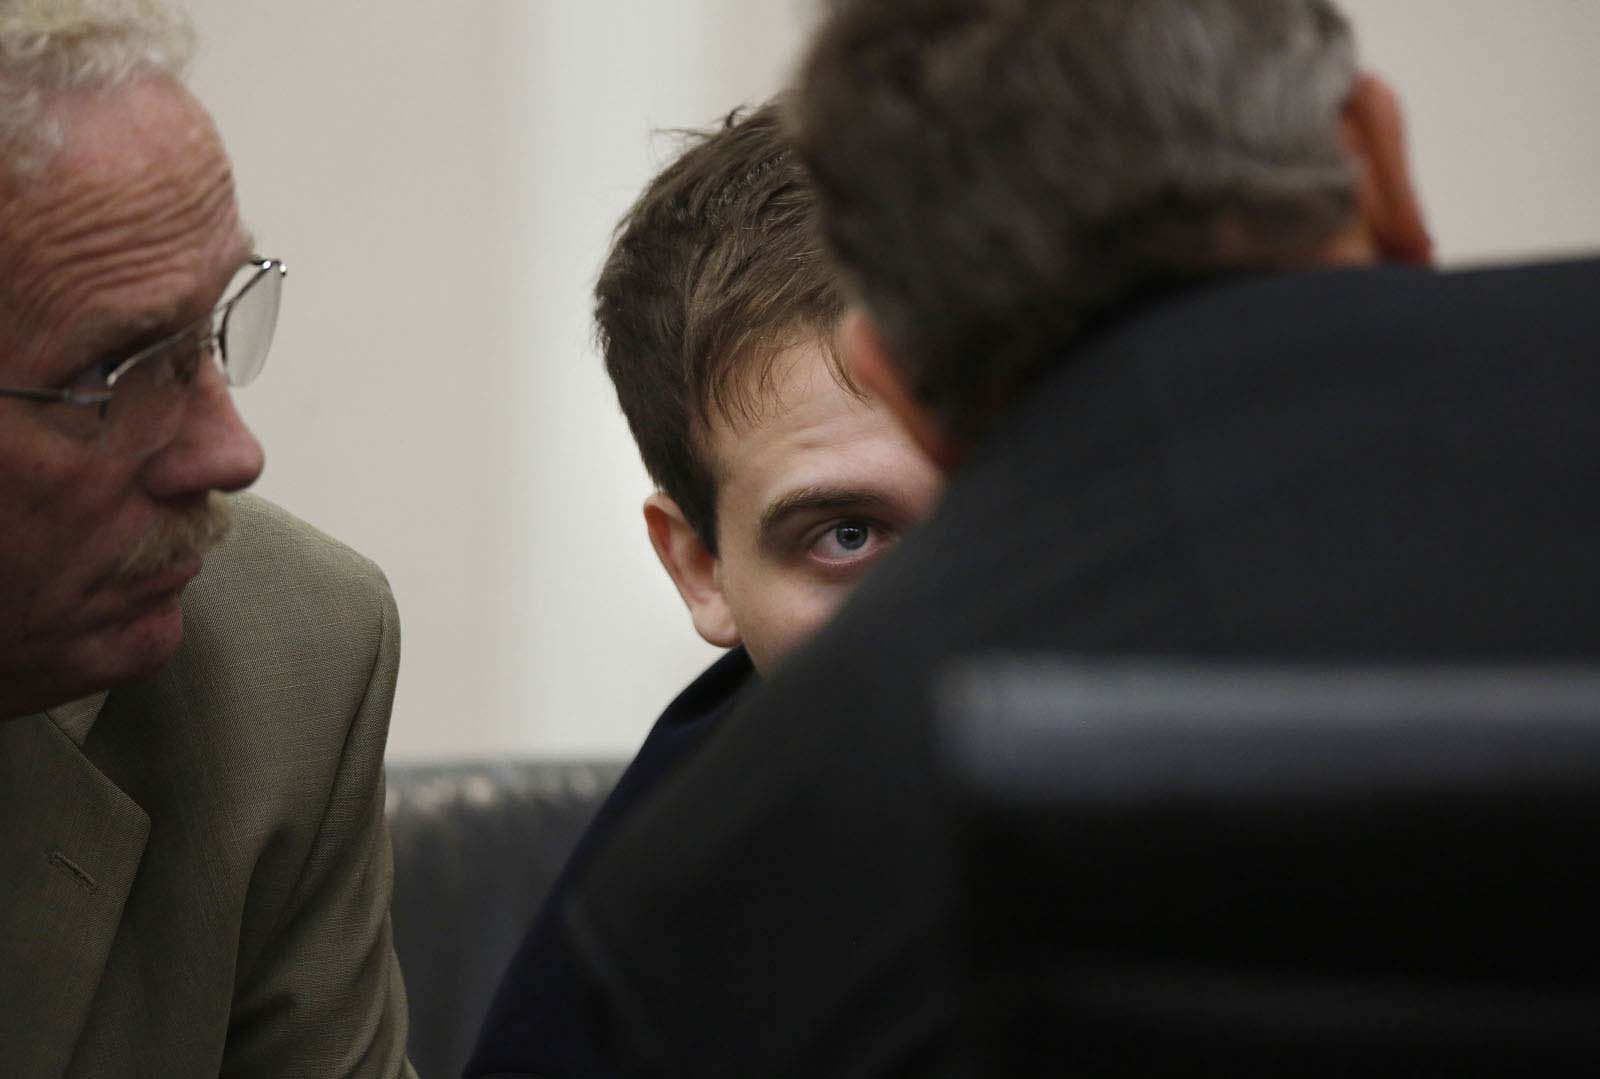 Pedro Bravo talks with his defense team during a break from closing statements by Assistant State Attorney Bill Ezzell during Bravo's murder trial in courtroom 1B of the Alachua County Criminal Justice Center Friday, August 15, 2014.  Bravo is accused of killing University of Florida student Christian Aguilar.  (Doug Finger/The Gainesville Sun/Pool)